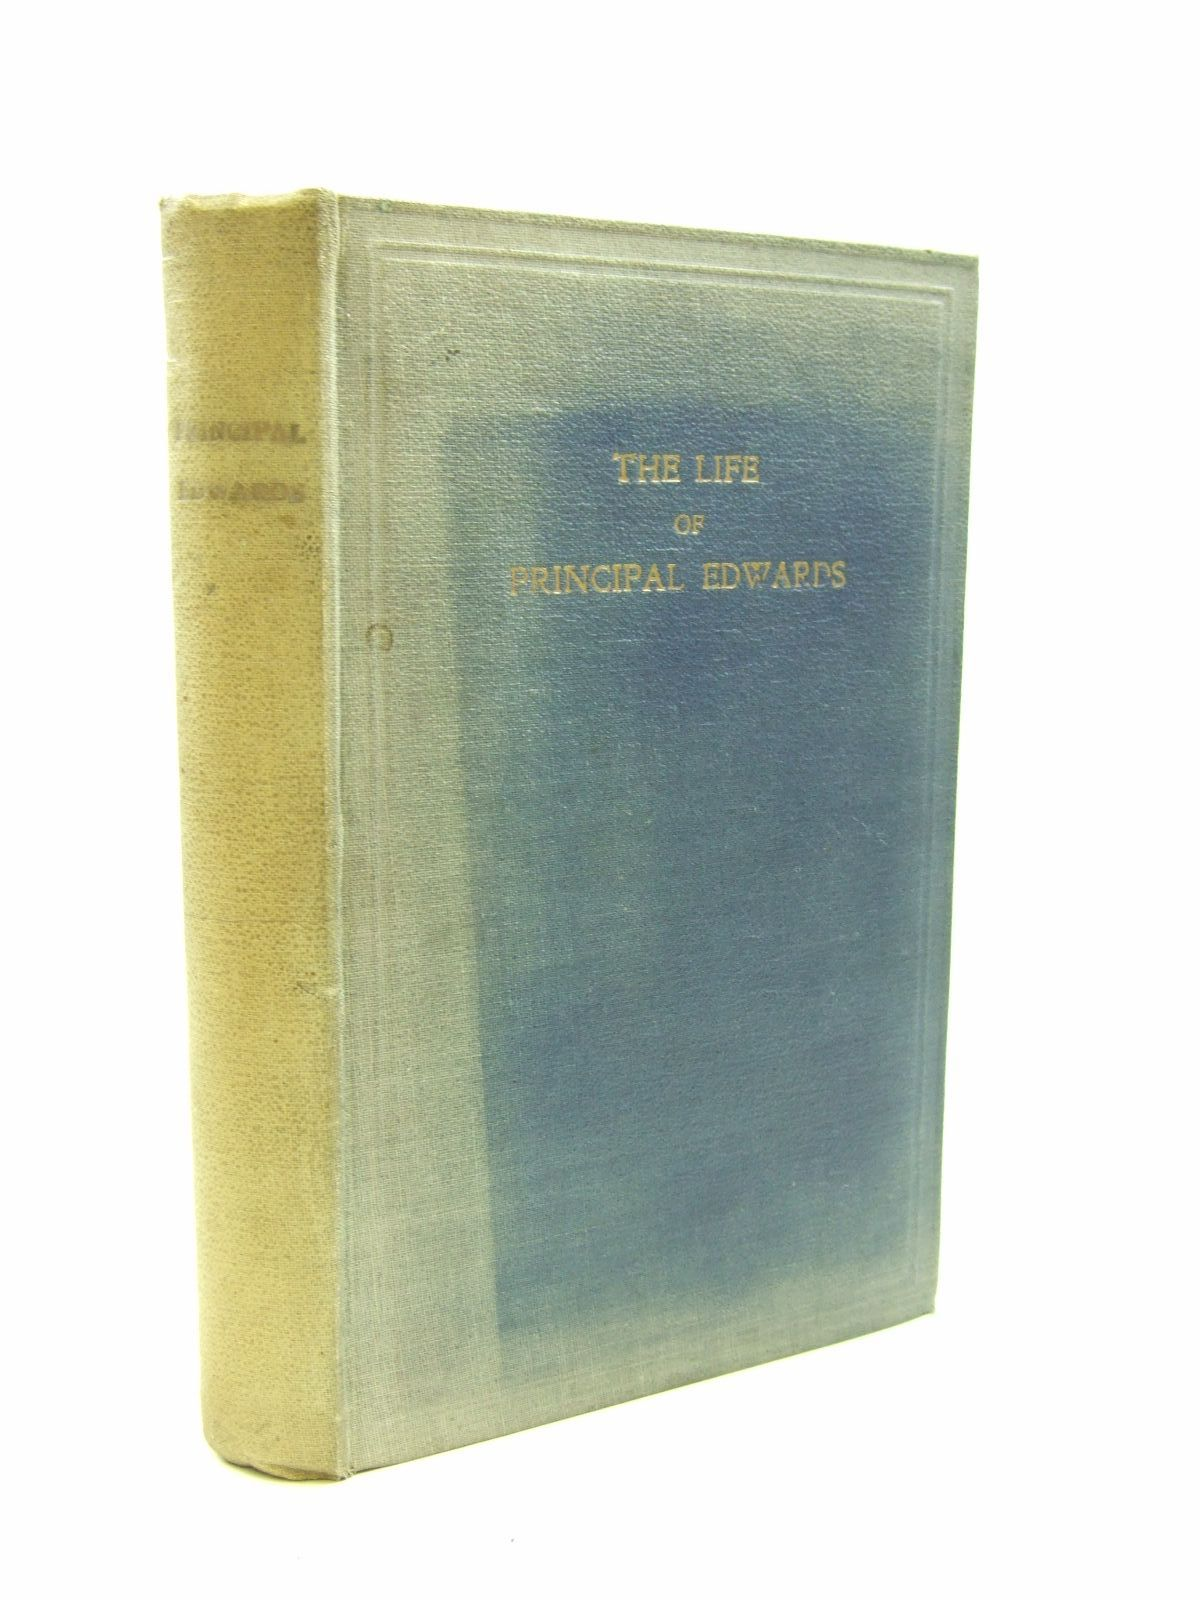 Photo of THE LIFE OF PRINCIPAL WILLIAM EDWARDS written by Chance, T.W. published by Priory Press Limited (STOCK CODE: 1207565)  for sale by Stella & Rose's Books